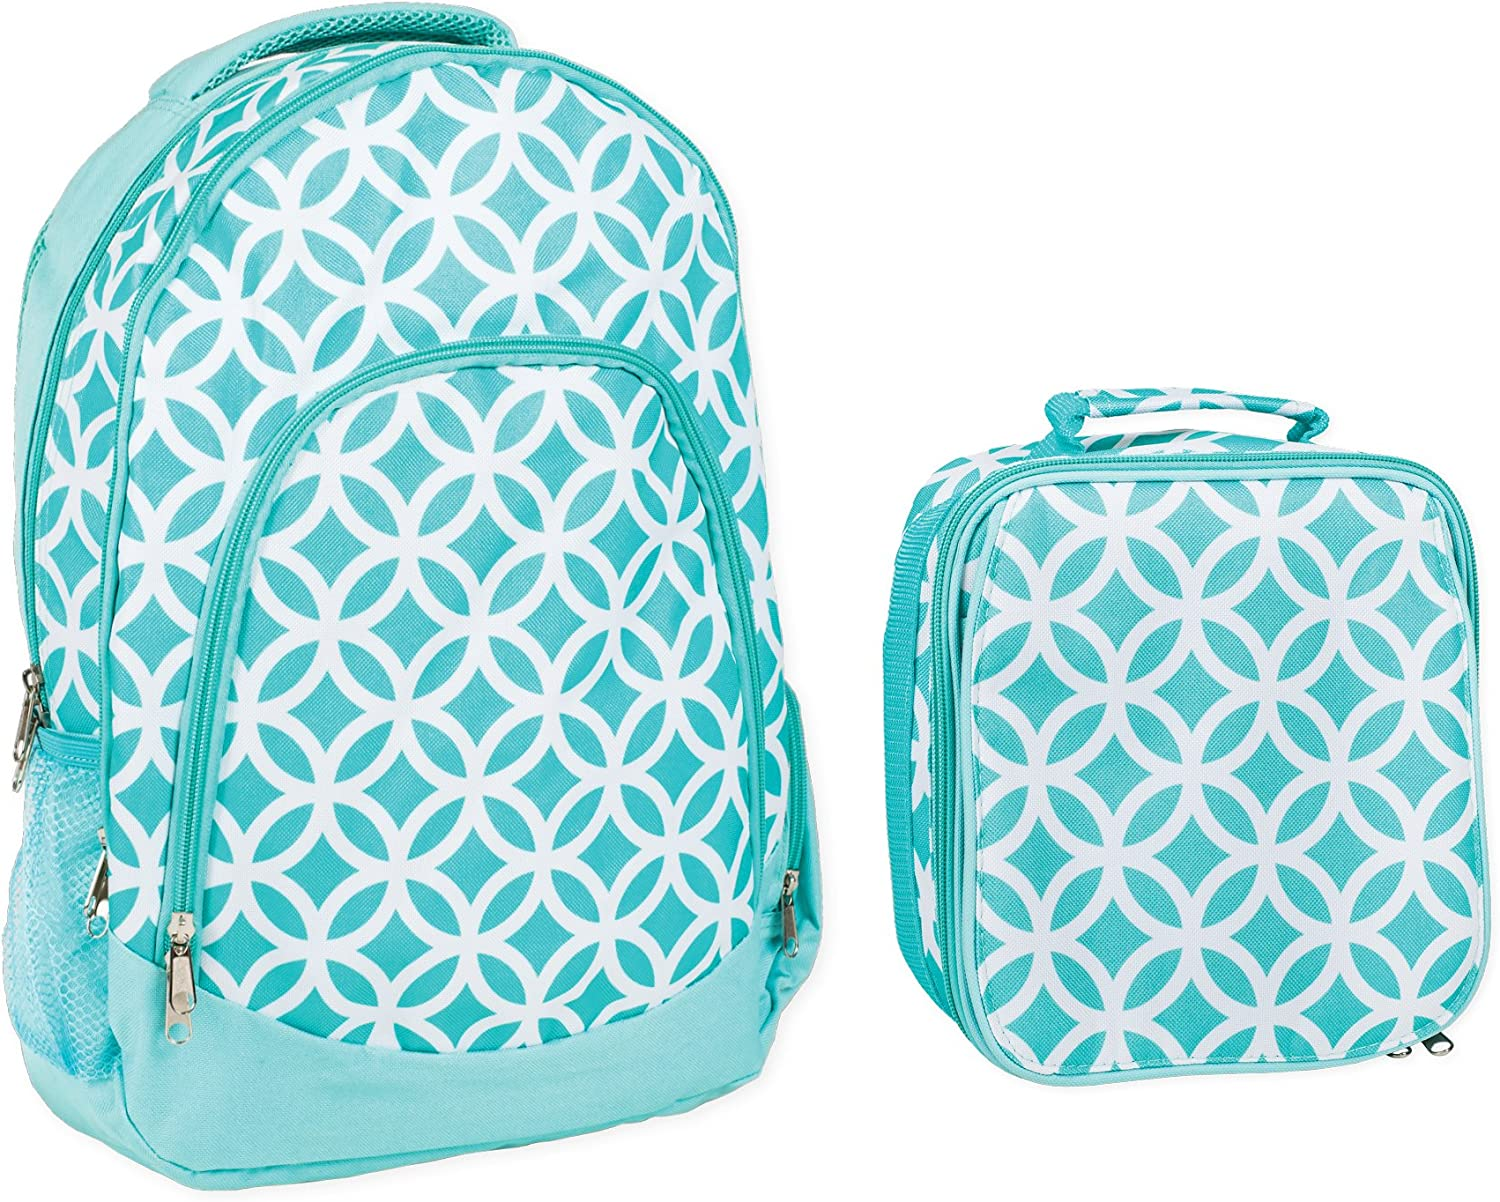 Reinforced Water Resistant School Backpack and Insulated Lunch Bag Set- Aqua Circle Link